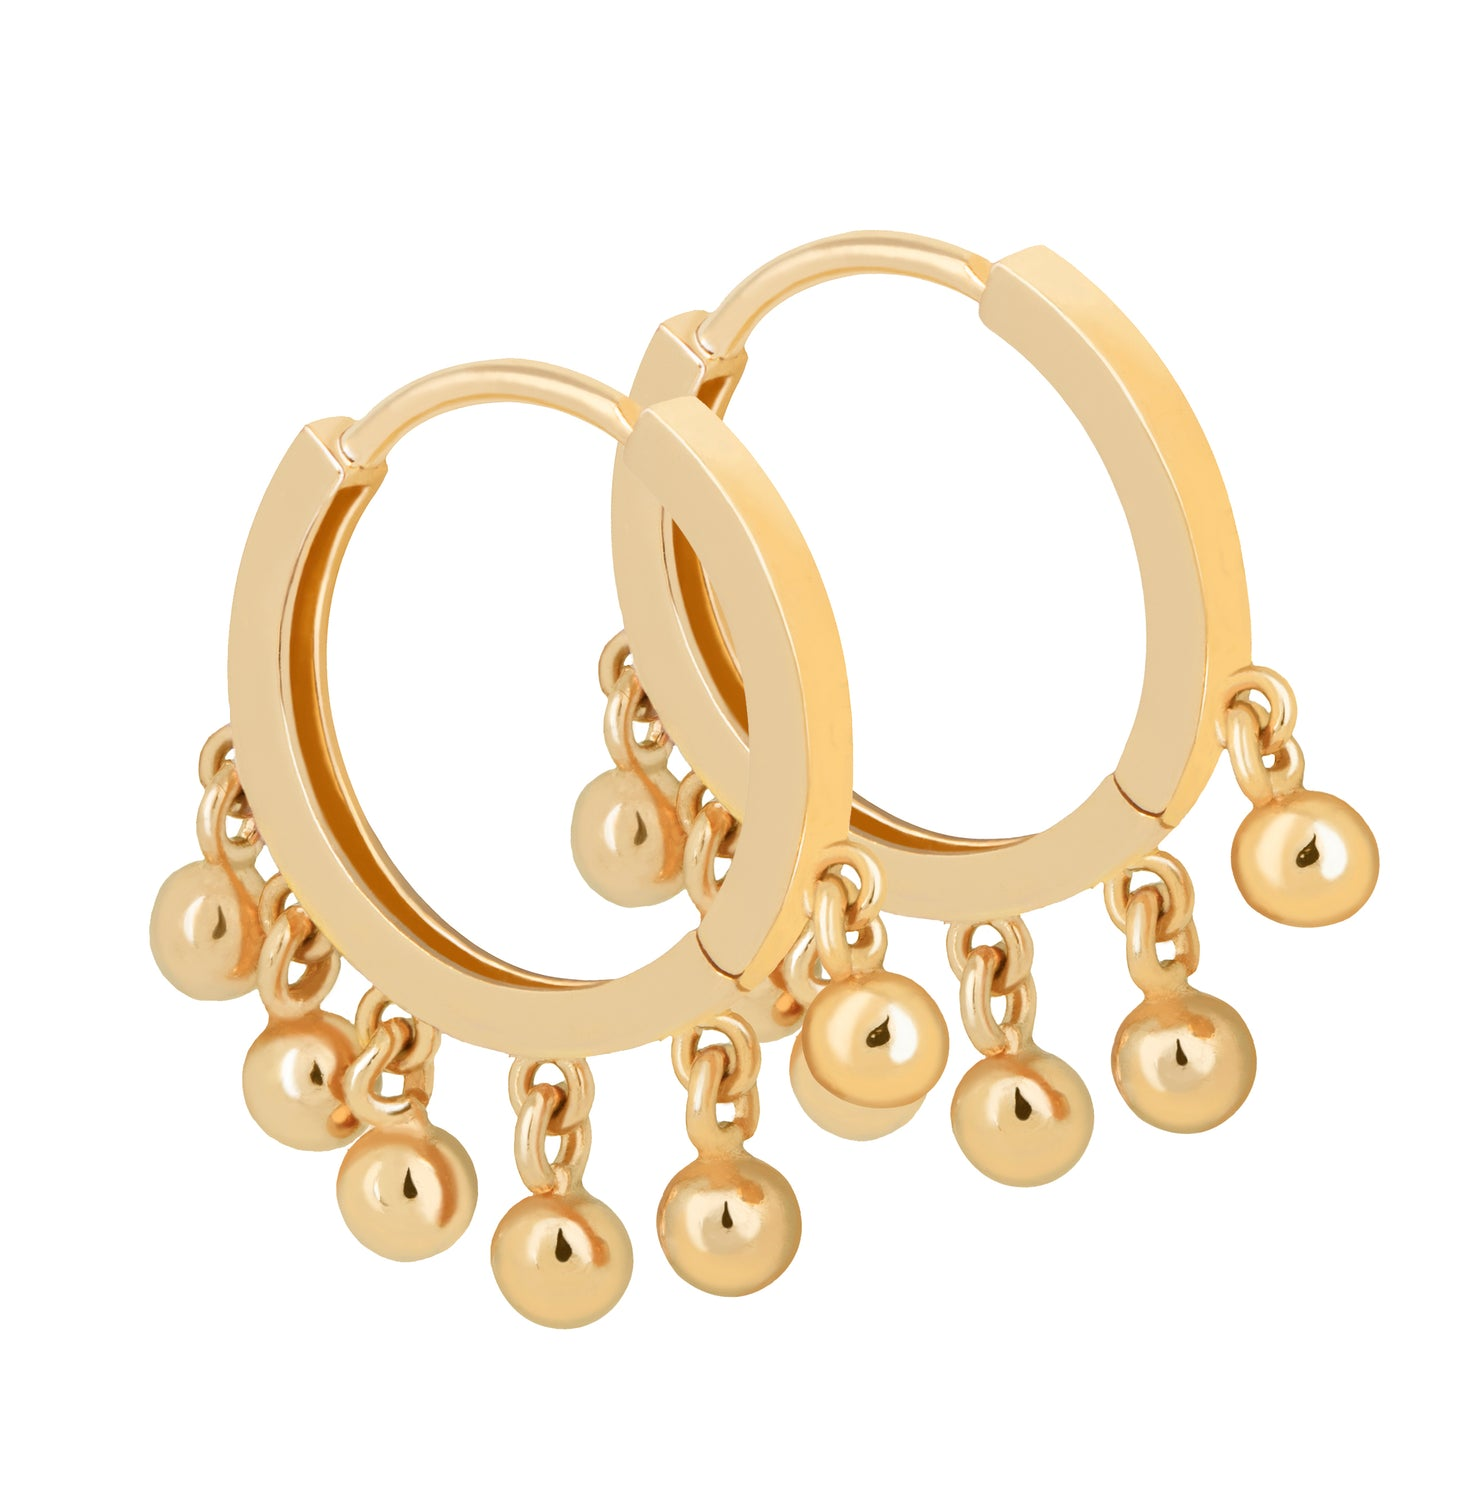 Astrid & Miyu - Mystic Ball Charm Hoops Earring - Gold